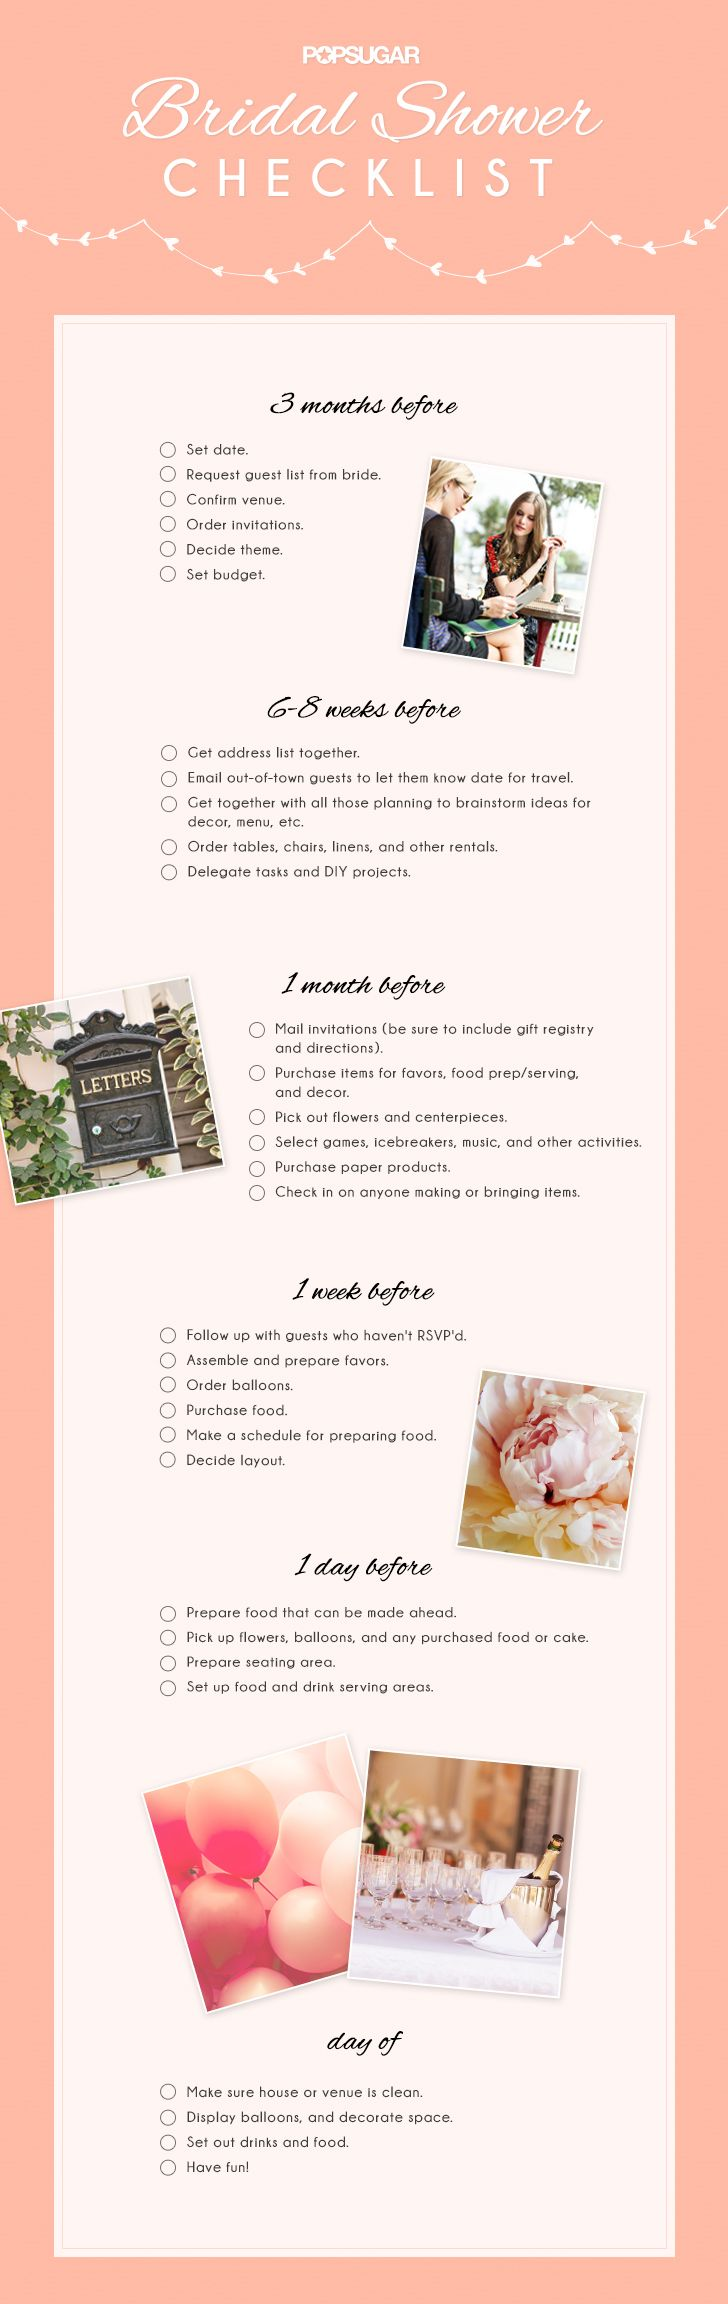 The Ultimate Bridal Shower Checklist! This may not be necessary but it looks cute! (: